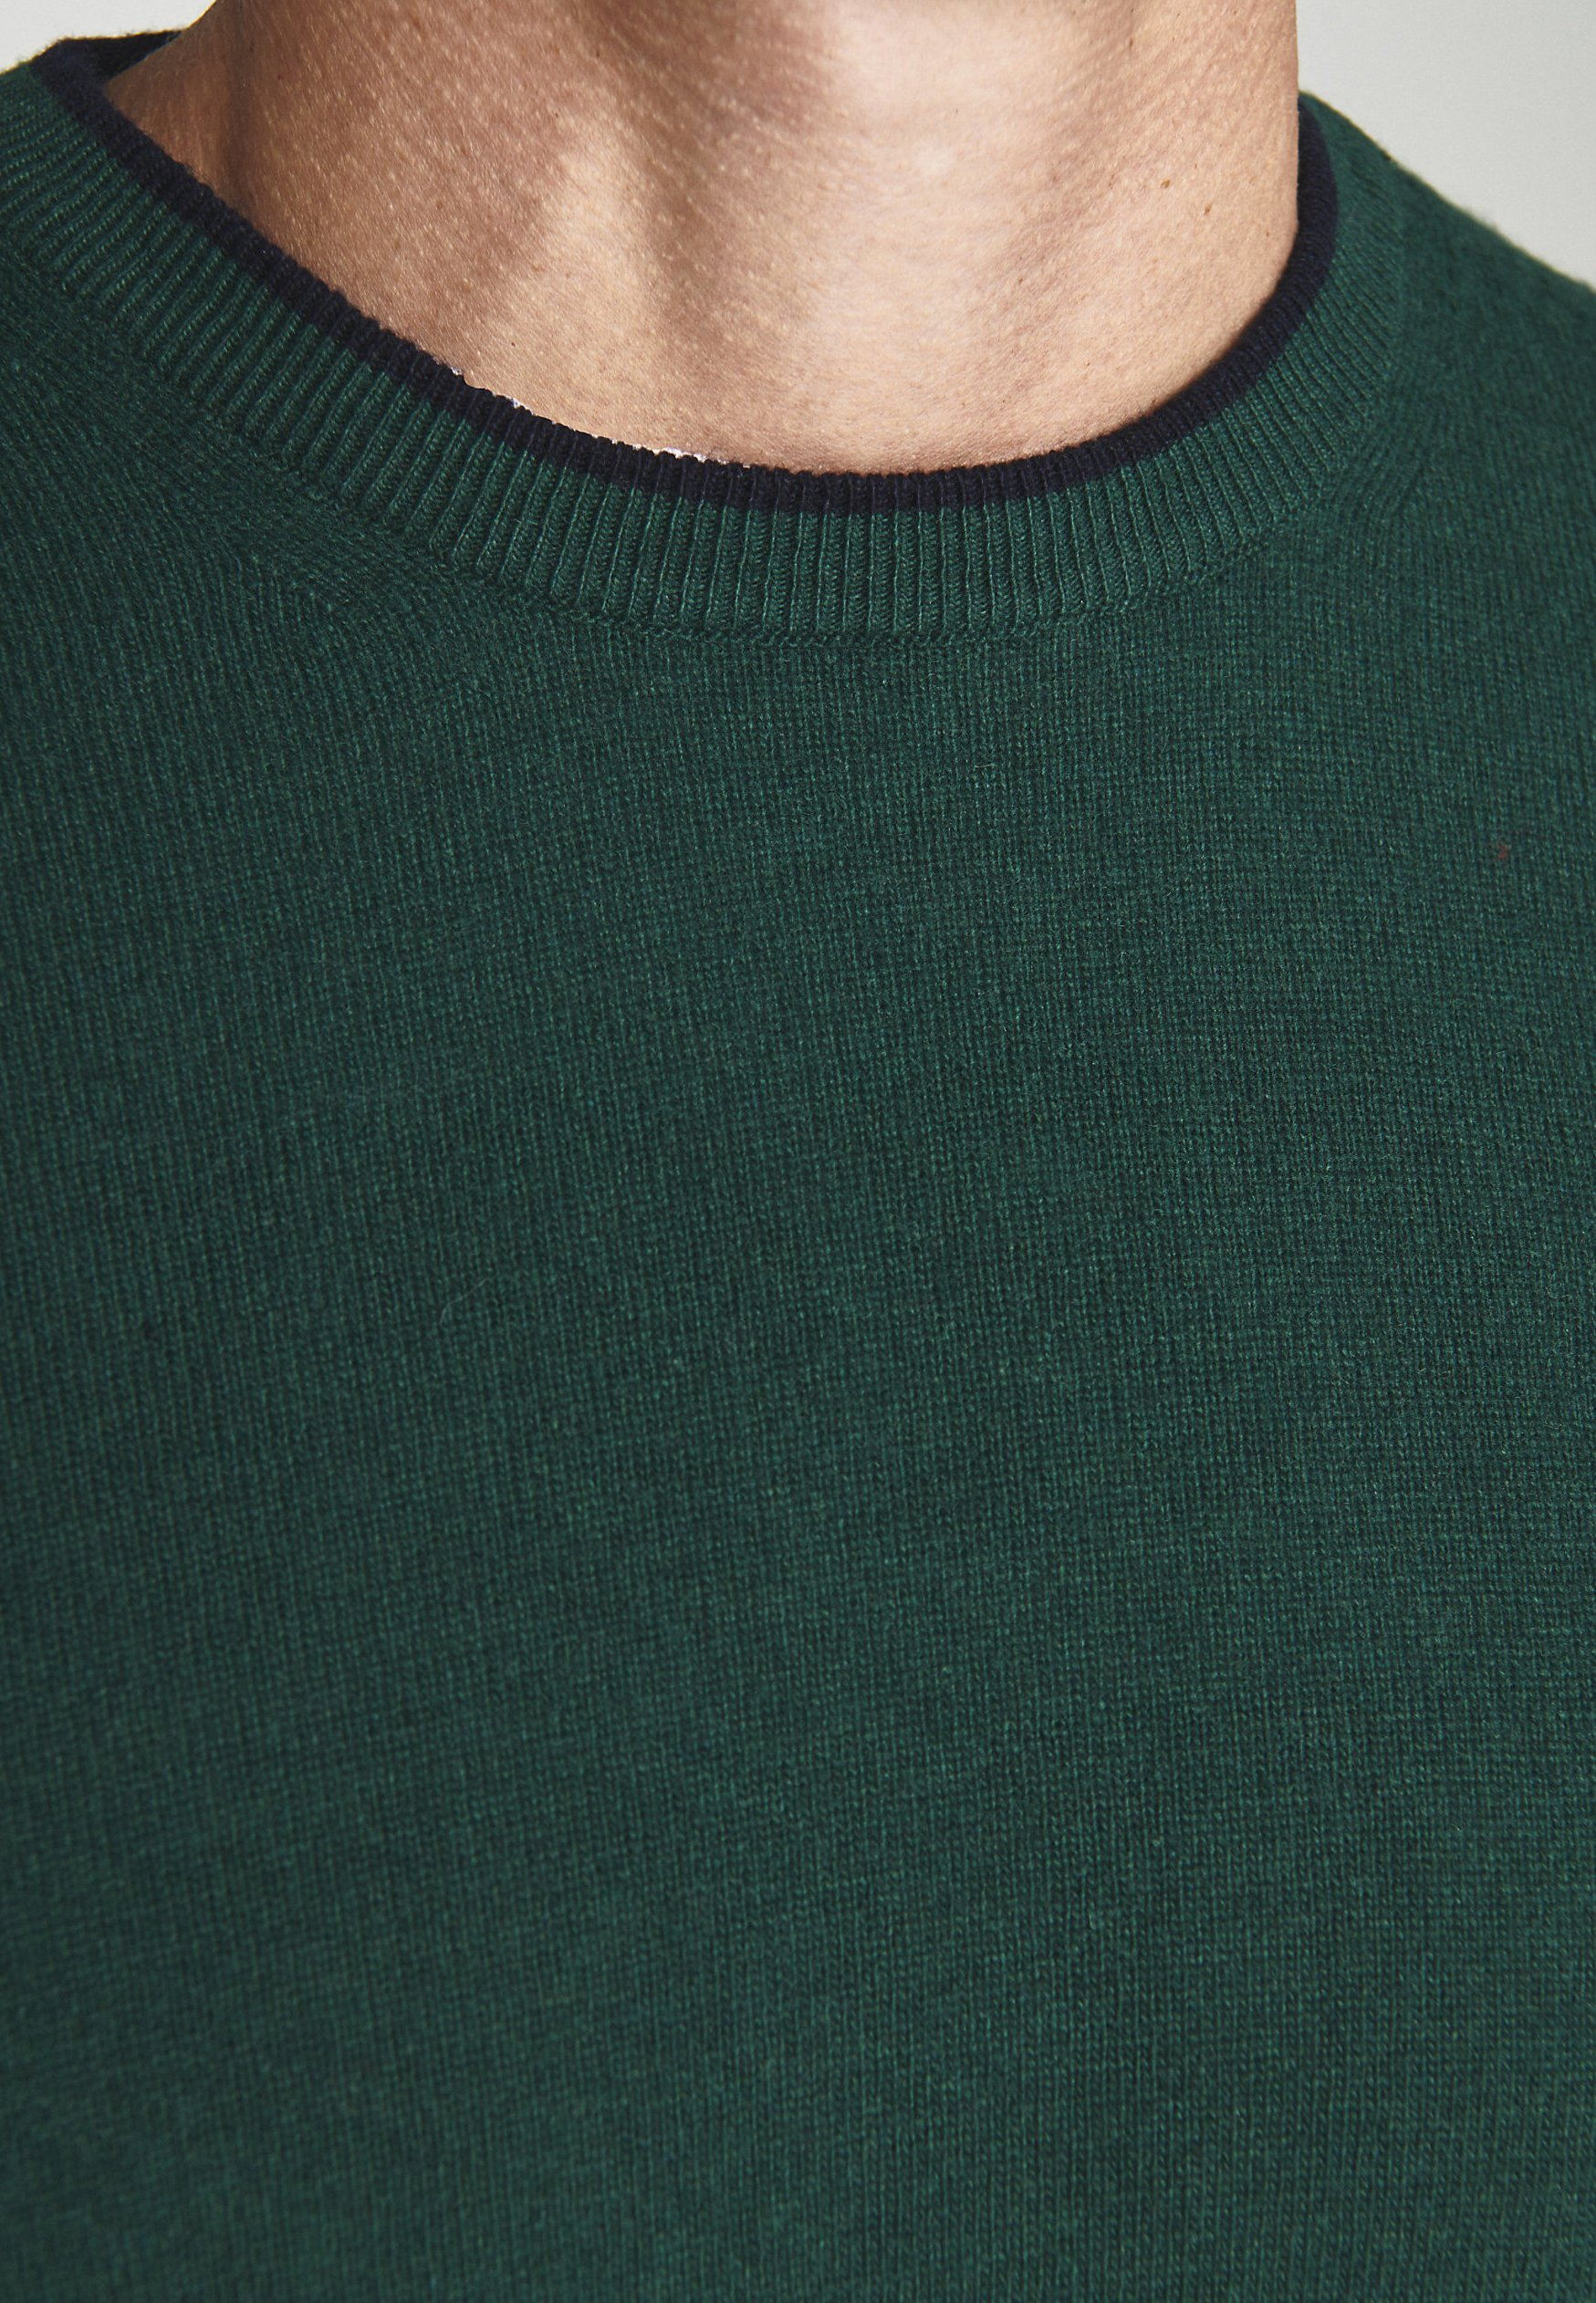 North Sails Pullover - green